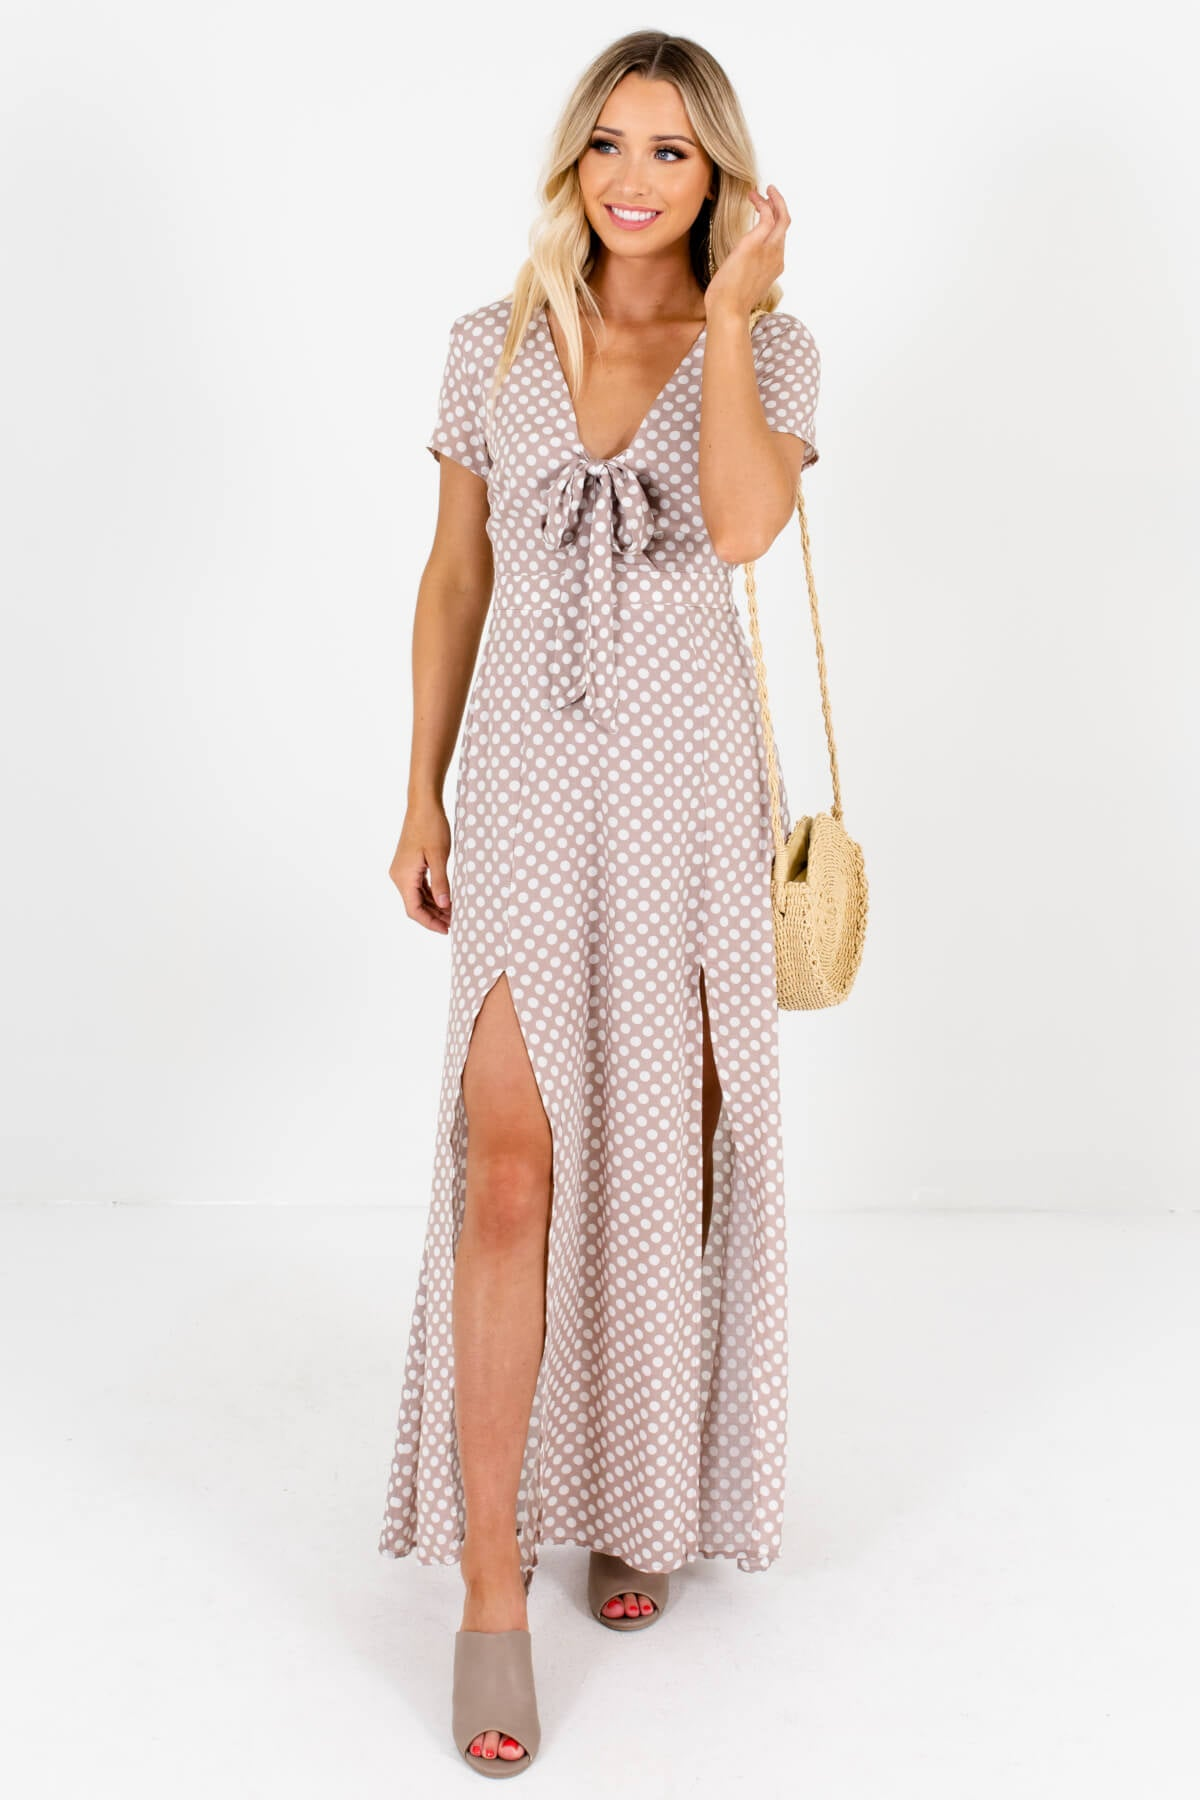 Taupe Brown White Polka Dot Patterned Boutique Maxi Dresses for Women